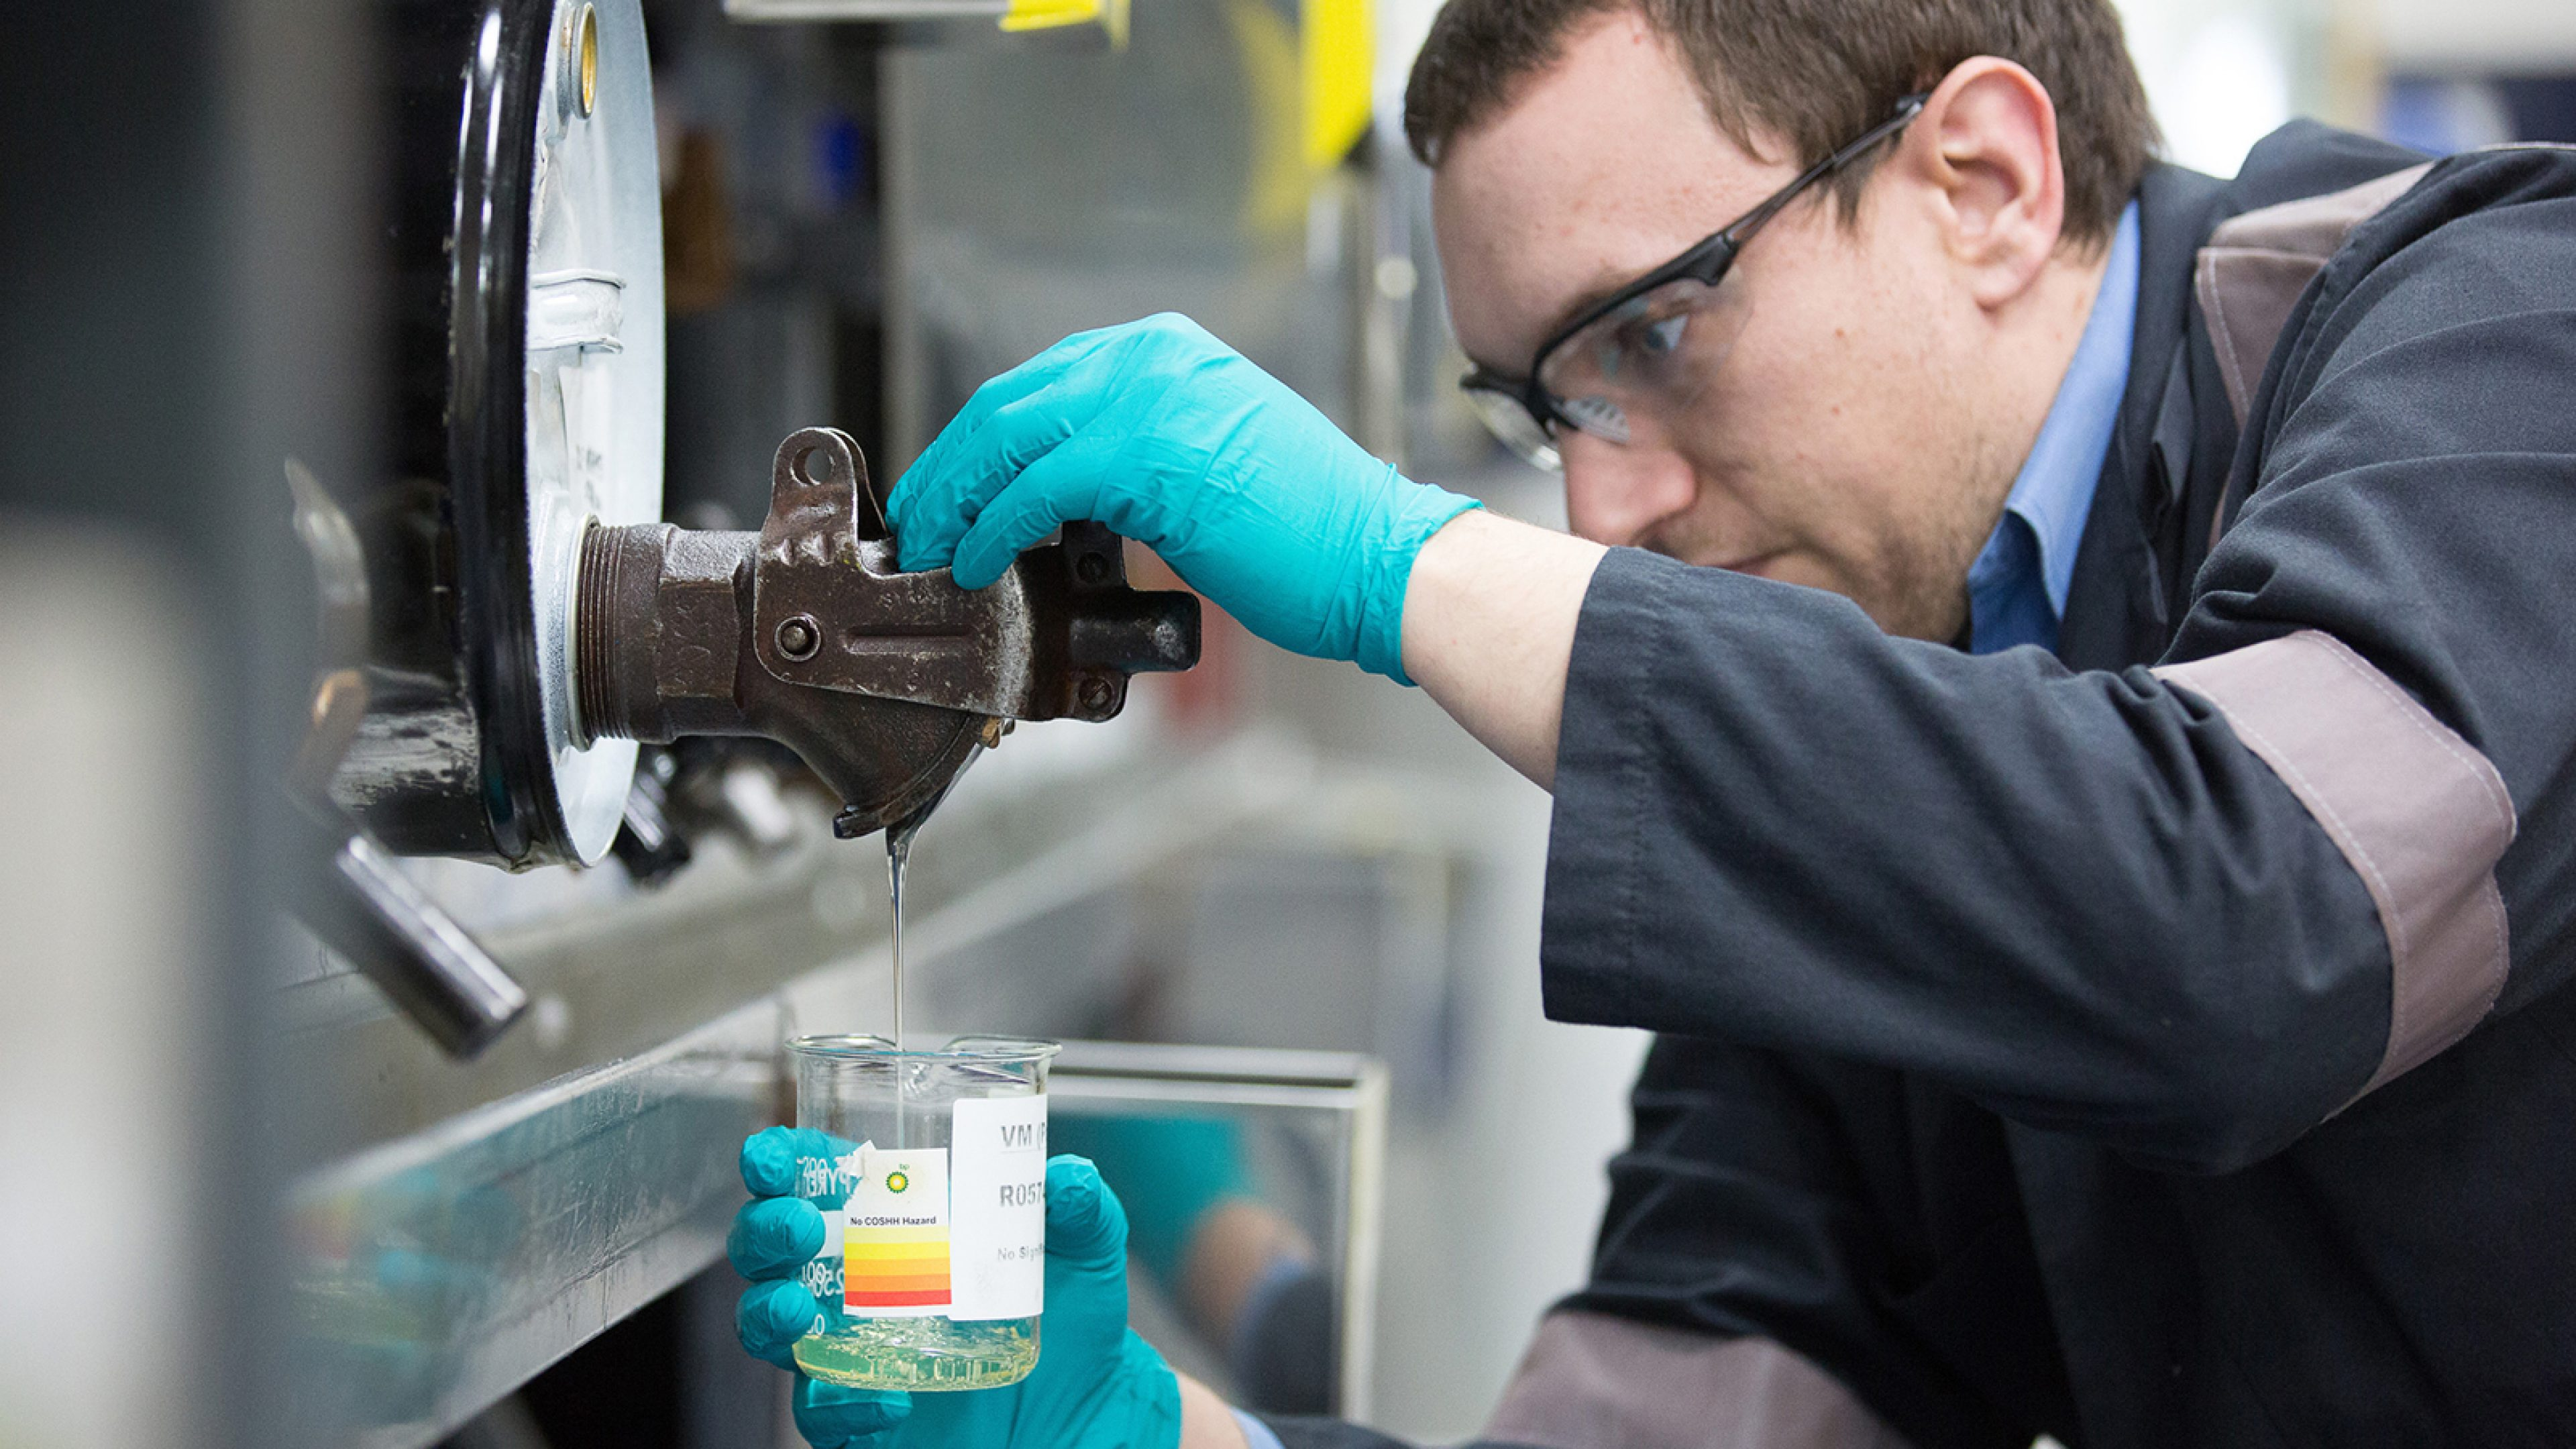 A technician dispenses a viscosity modifier into a beaker to add to a blend at the FPT Technology Center, Pangbourne UK.